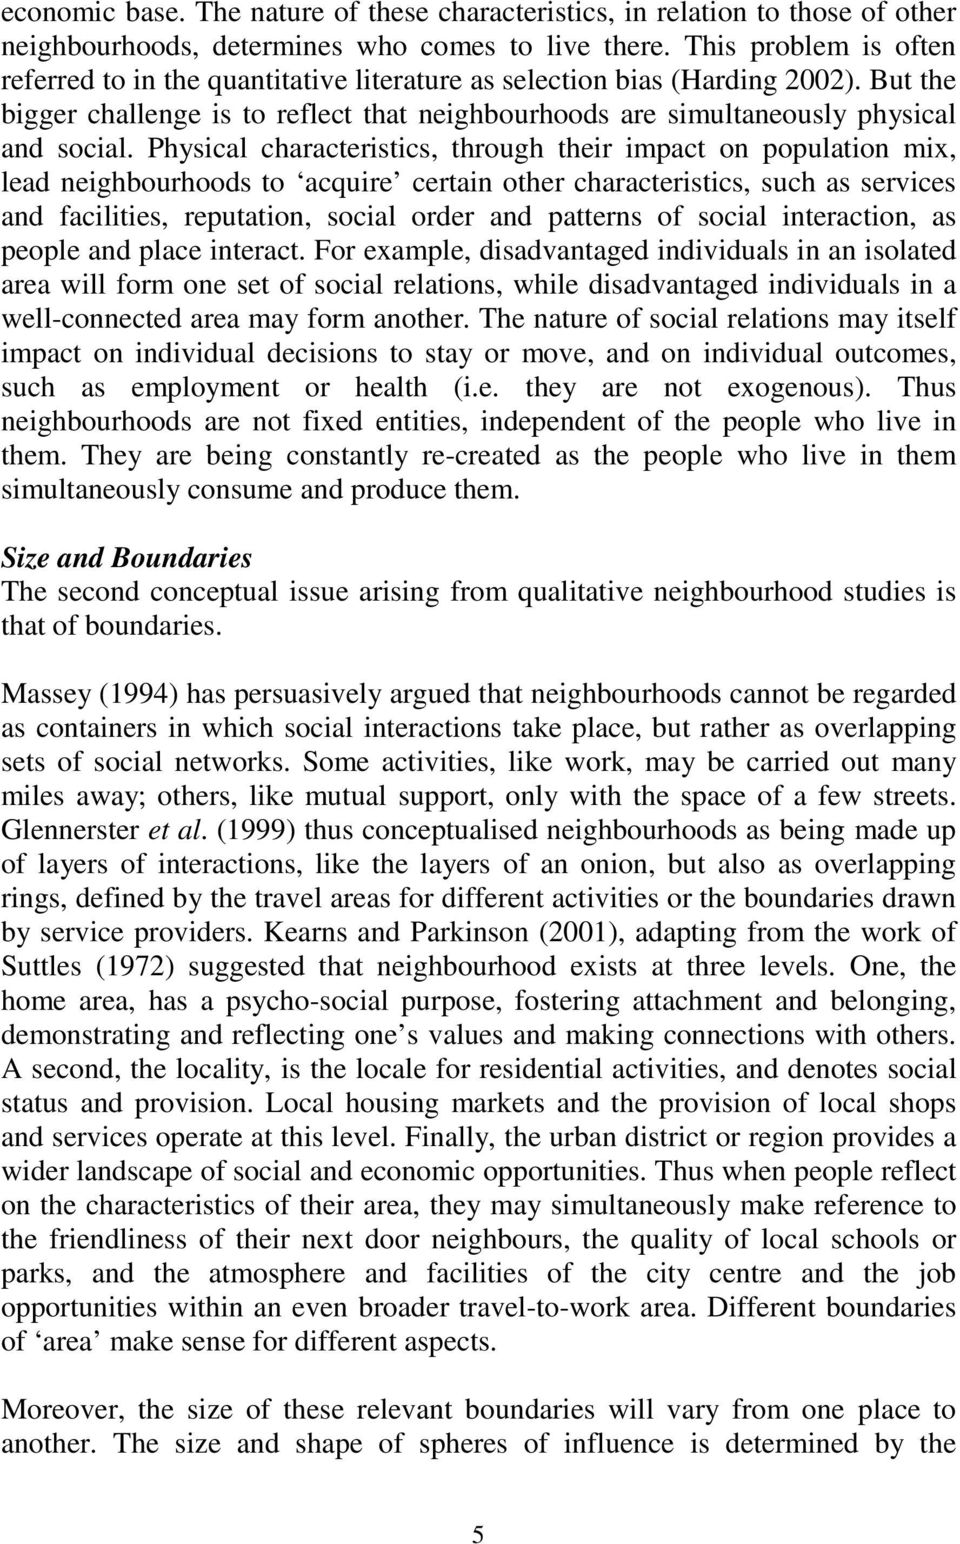 Physical characteristics, through their impact on population mix, lead neighbourhoods to acquire certain other characteristics, such as services and facilities, reputation, social order and patterns